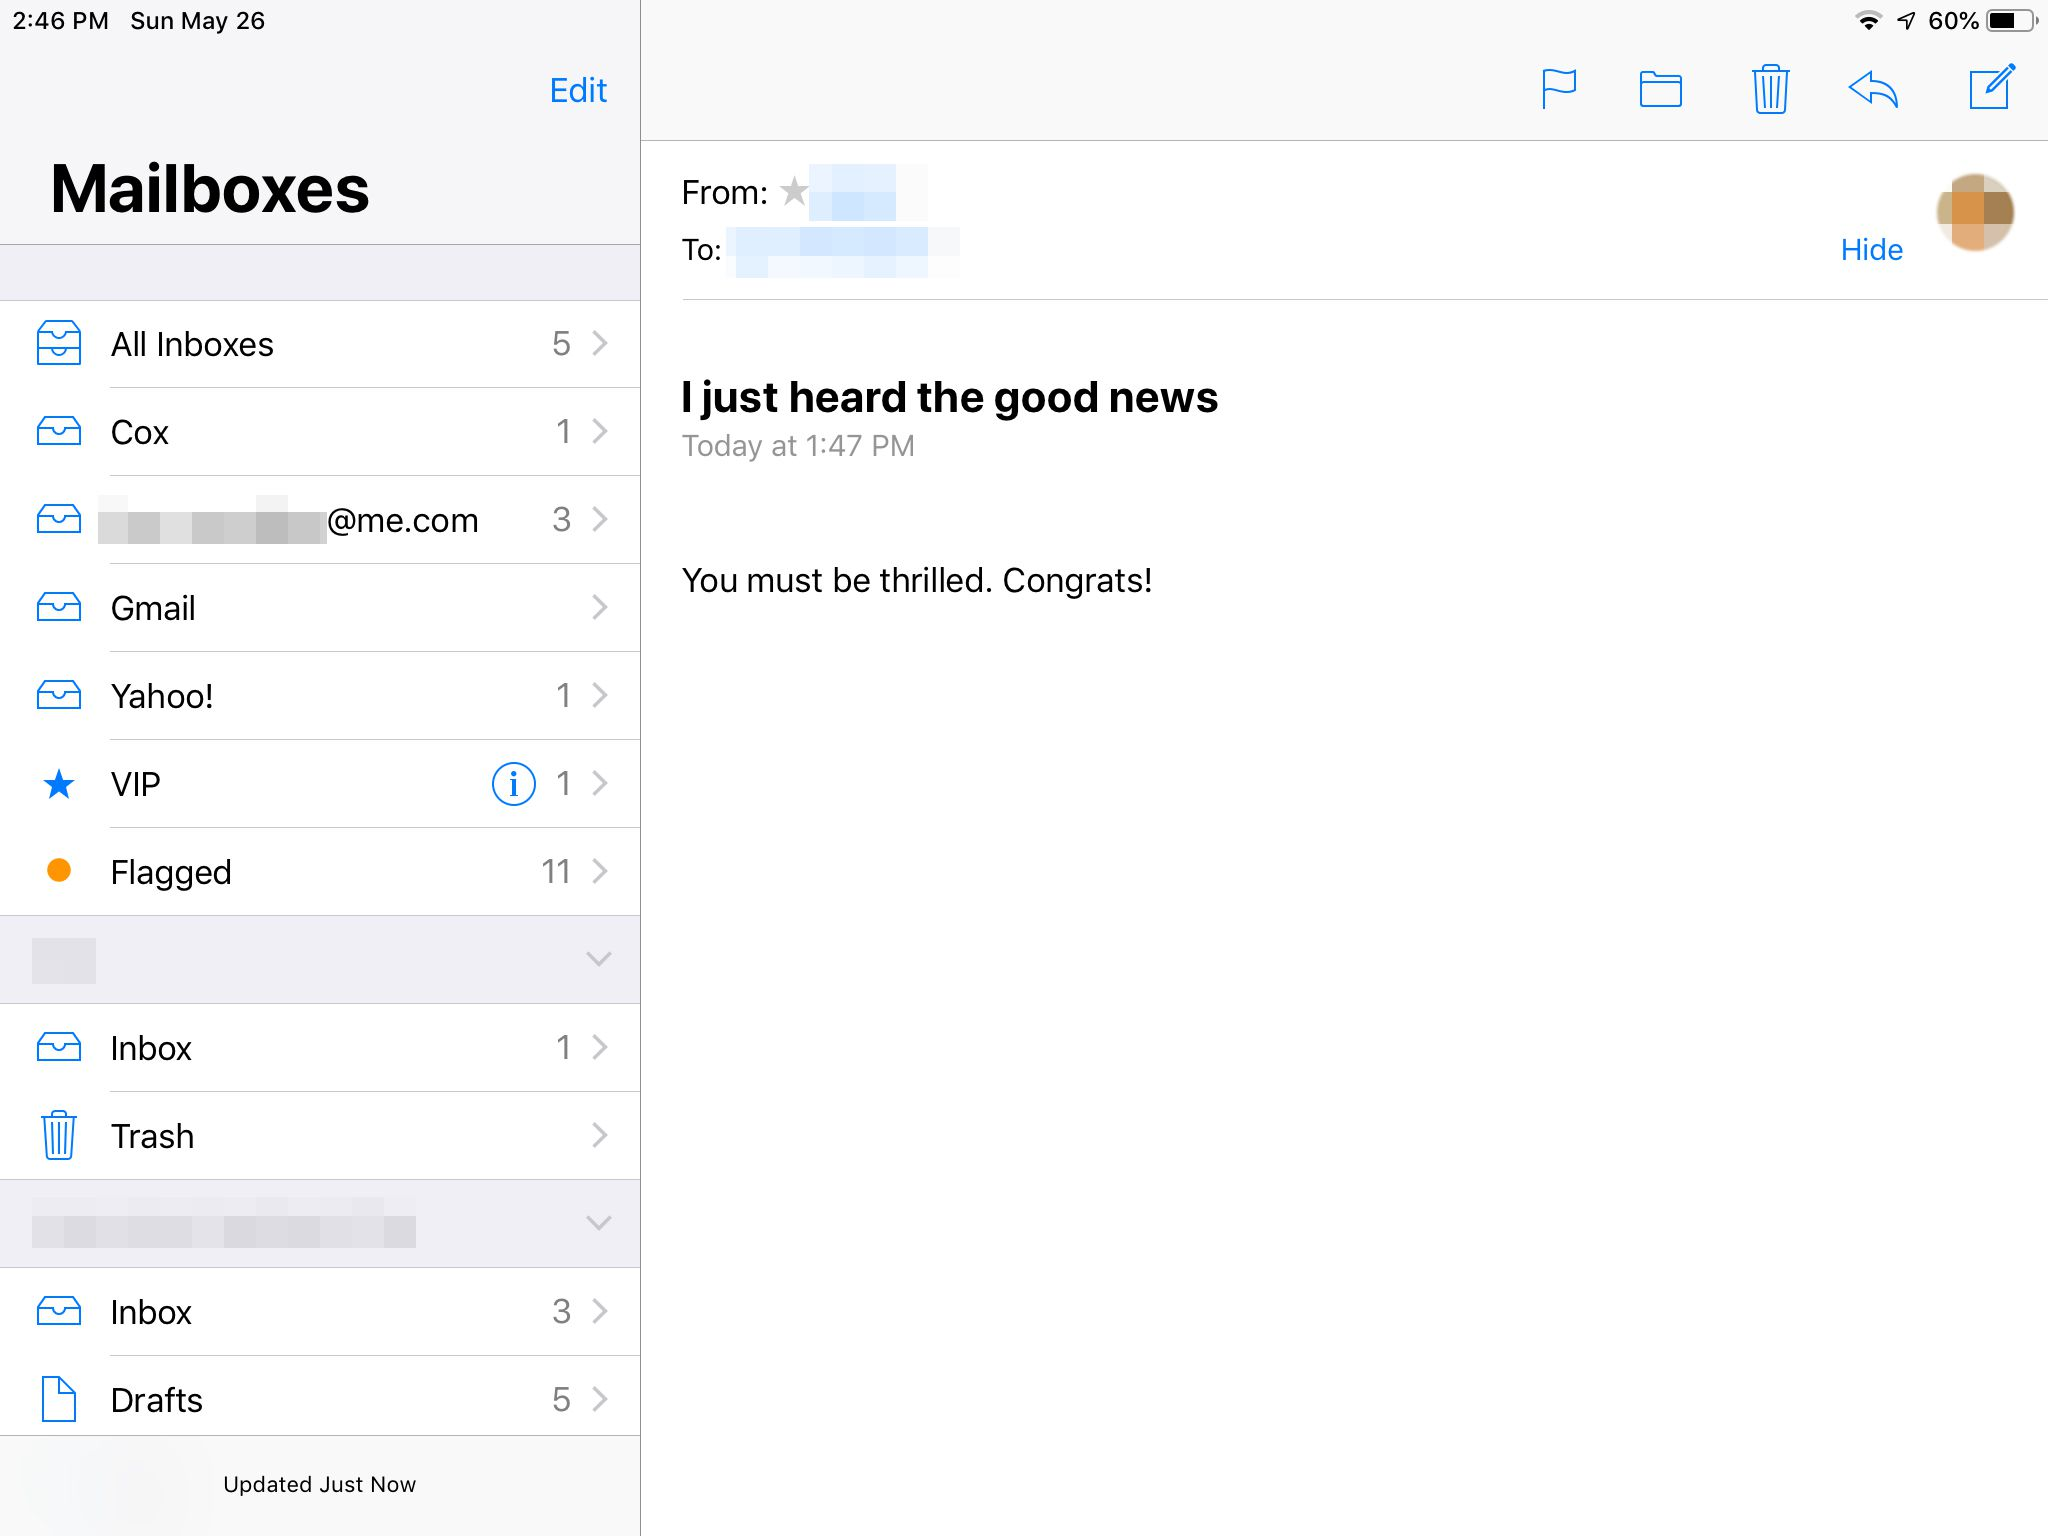 Mailboxes panel in Mail app